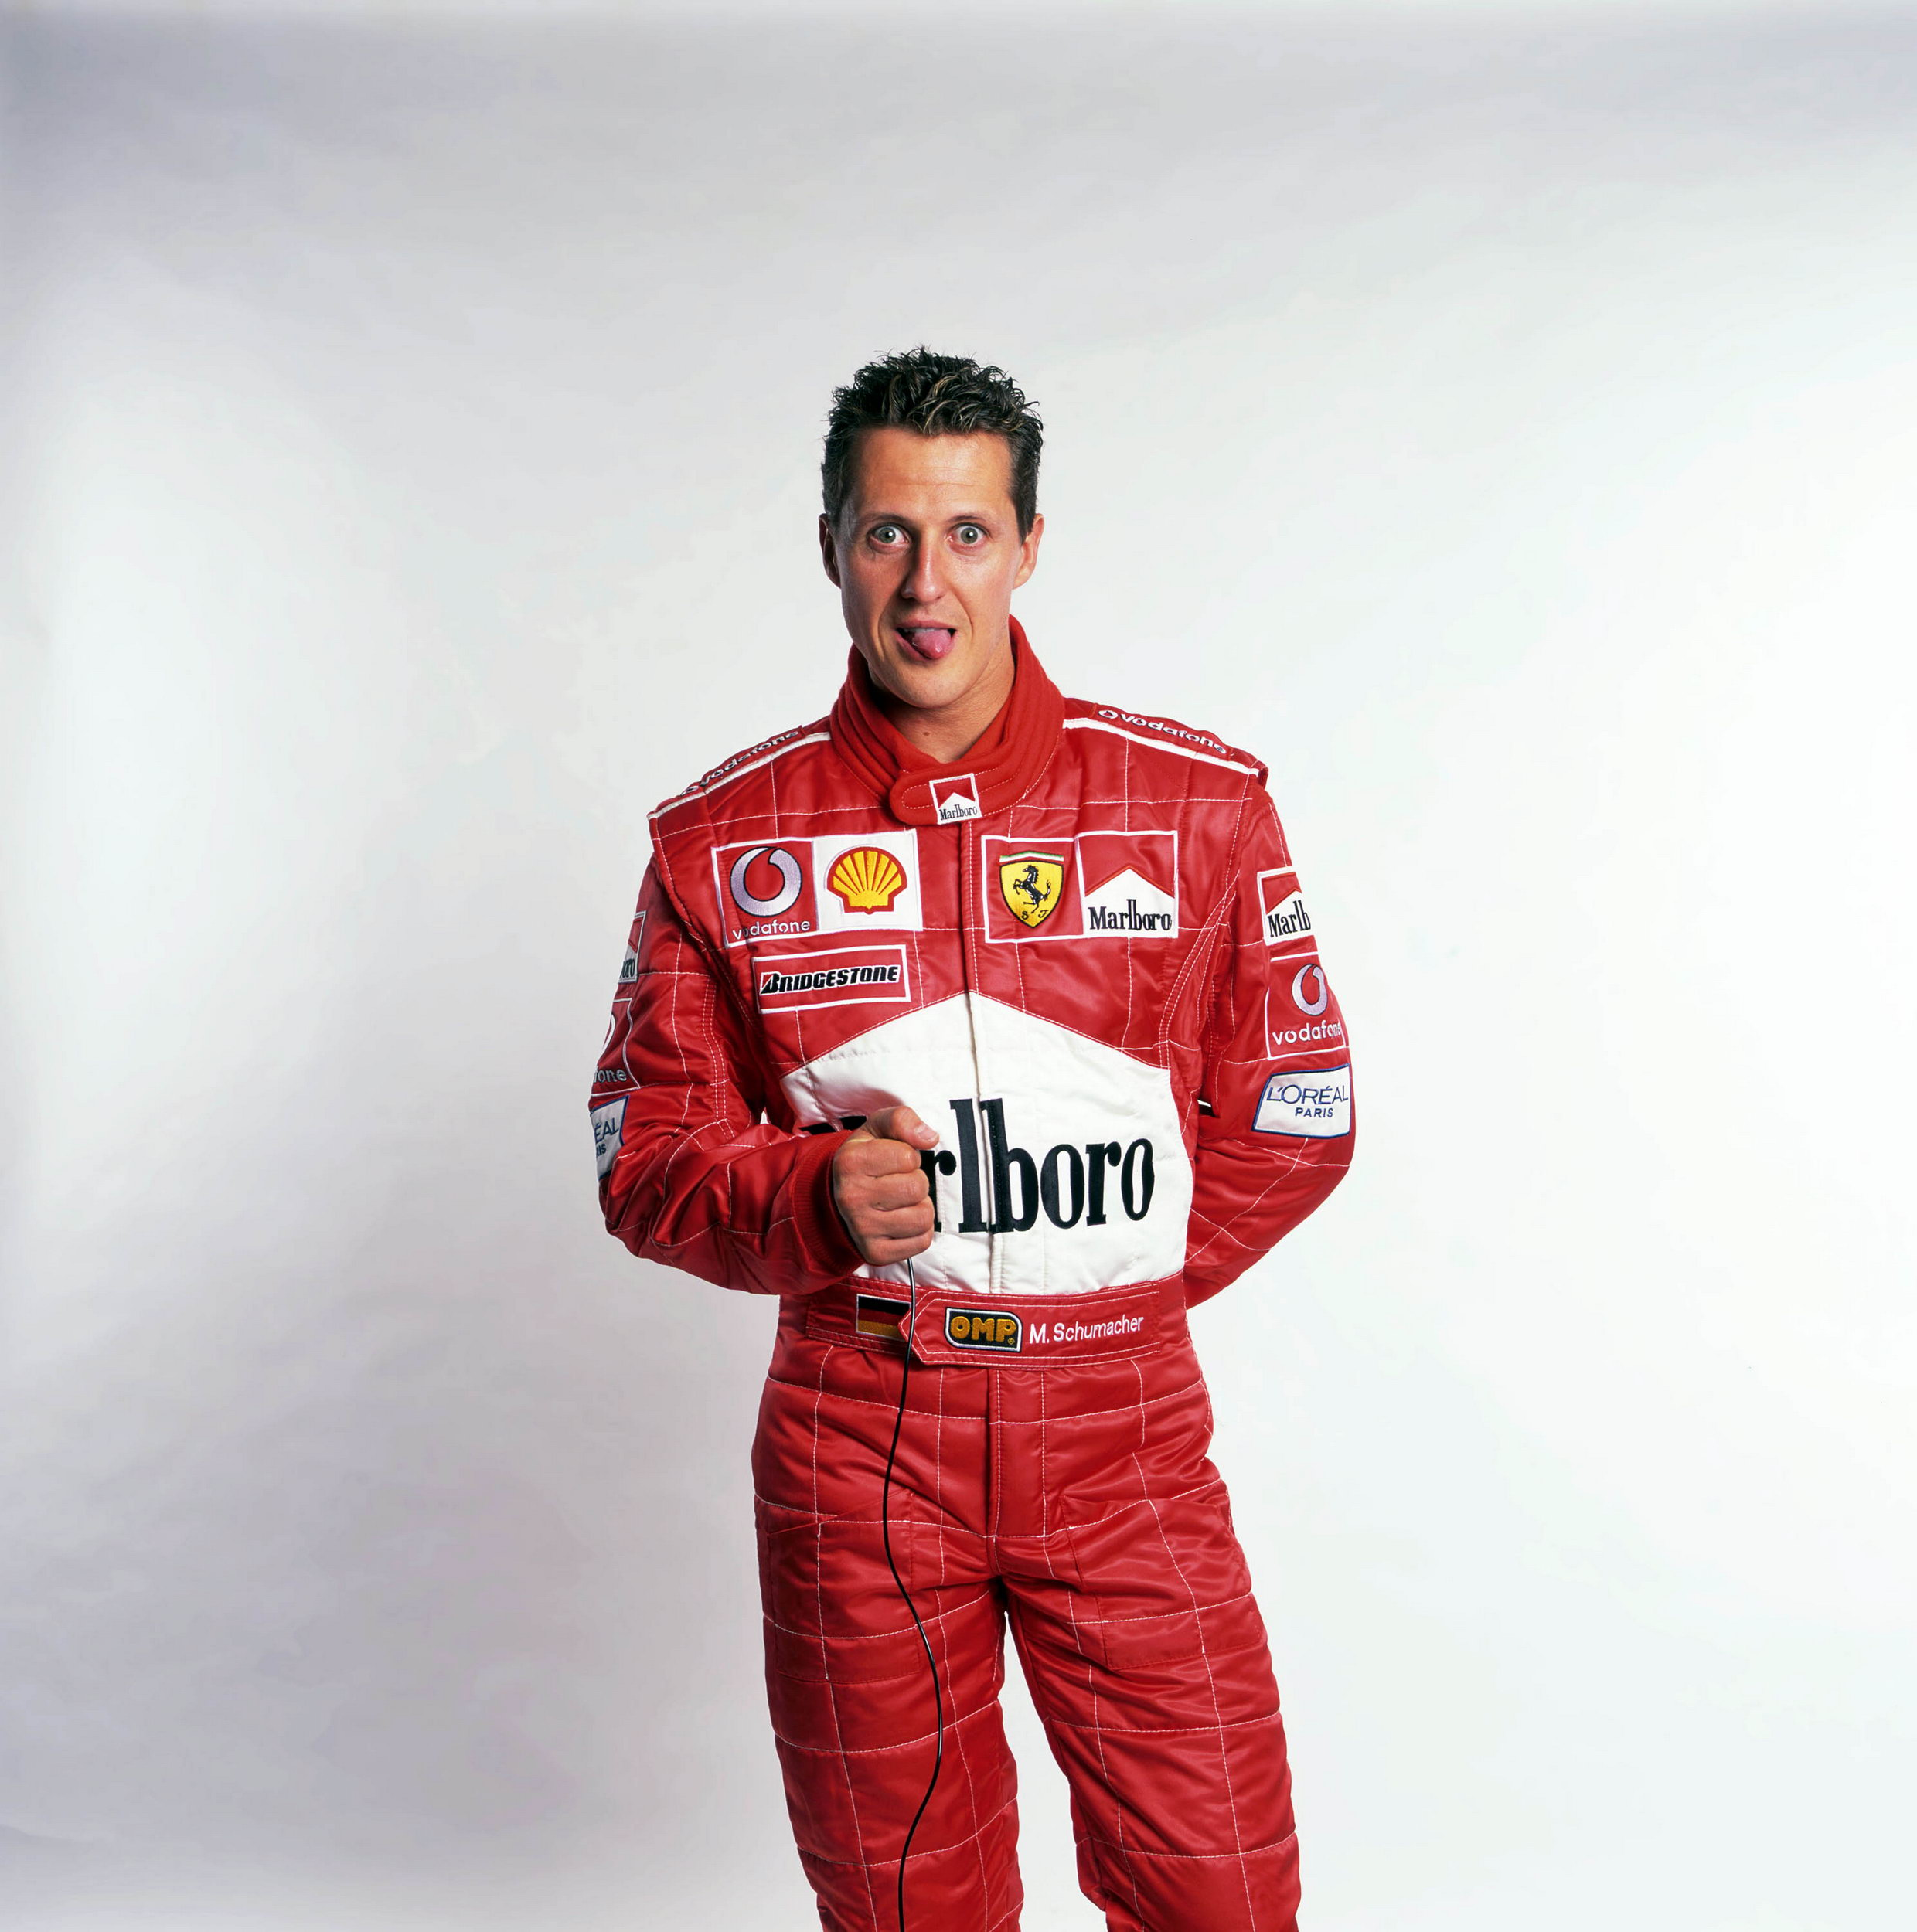 michael schumacher hd wallpapers